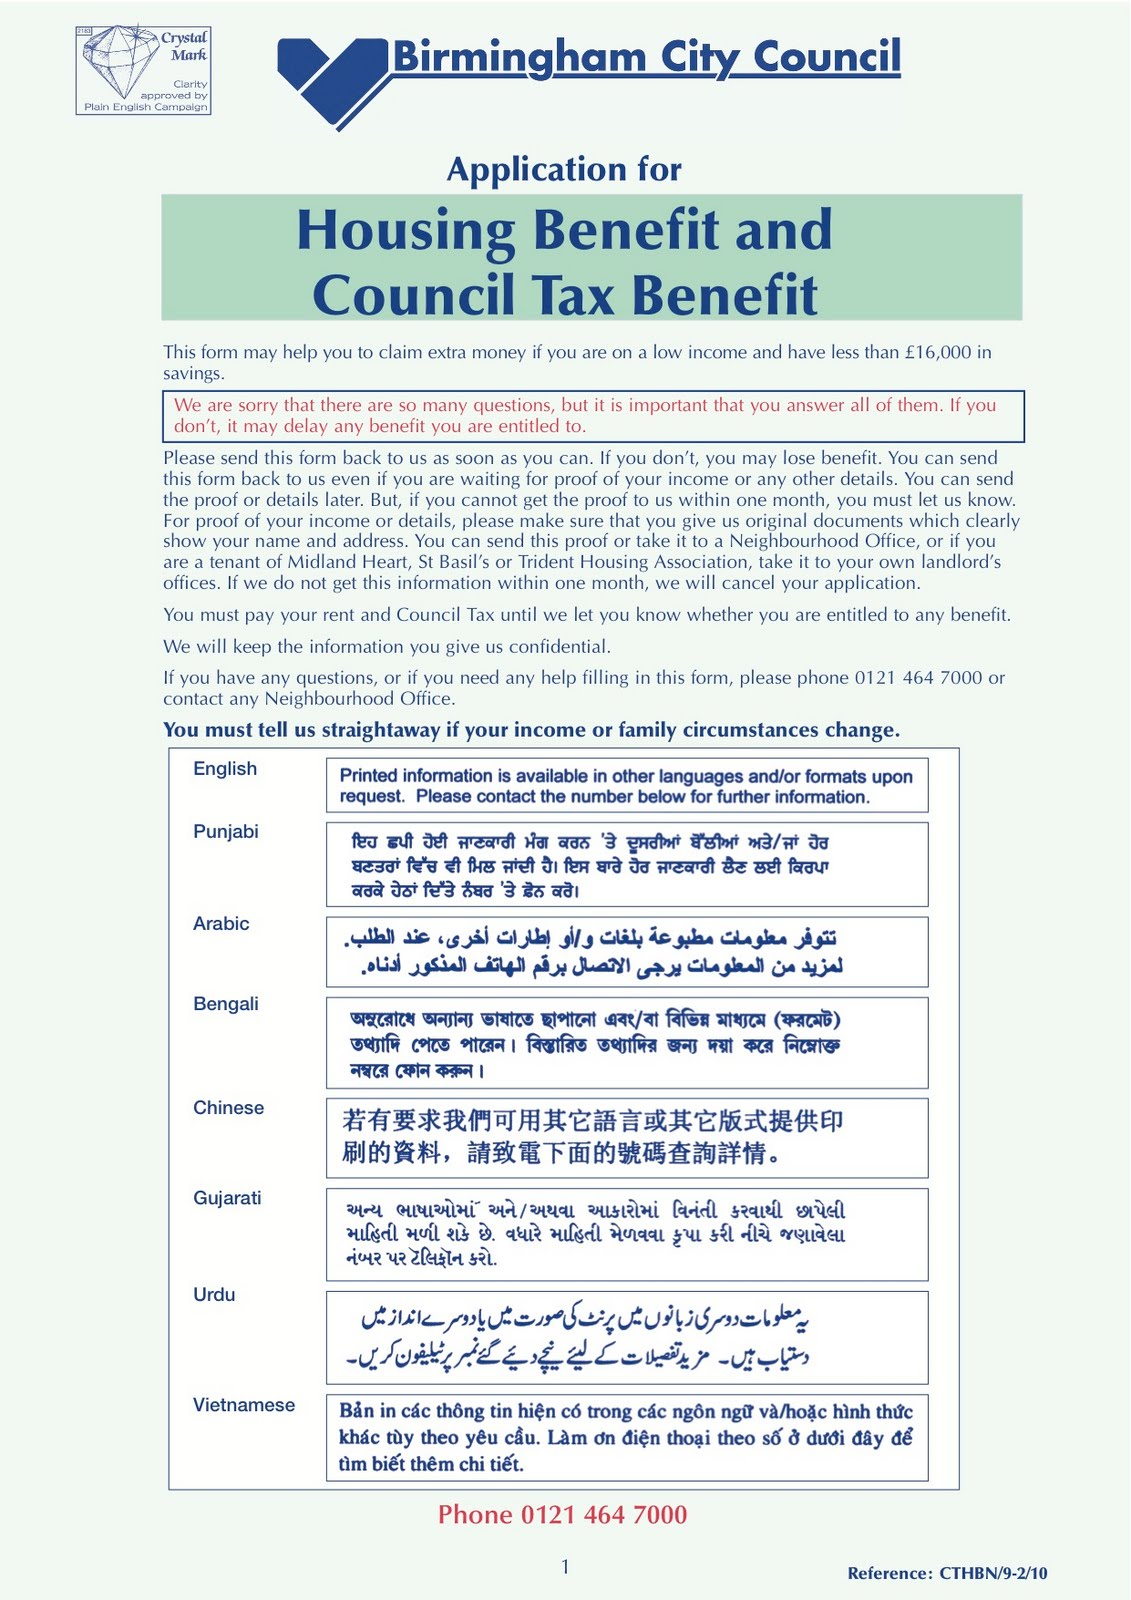 Housing+Benefit+and+Council+Tax+Benefit+Form.jpg